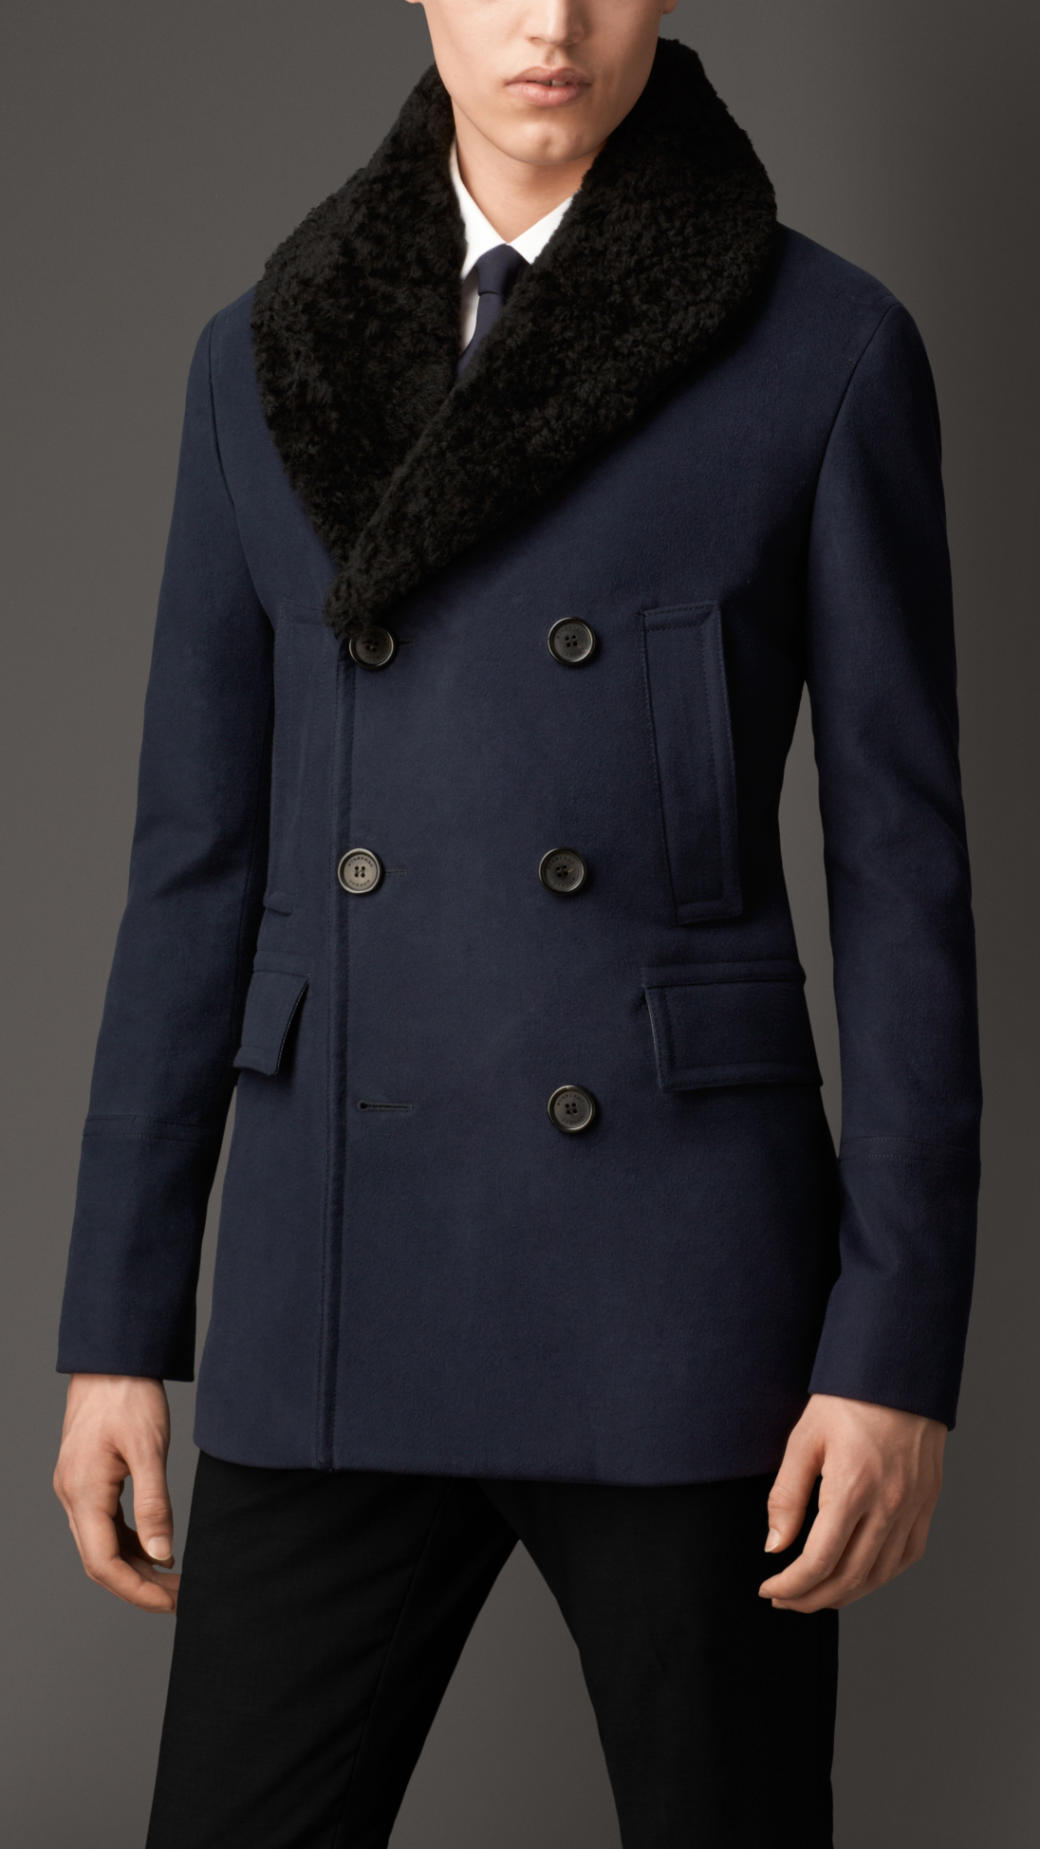 Burberry Cotton Blend Pea Coat With Shearling Topcollar In